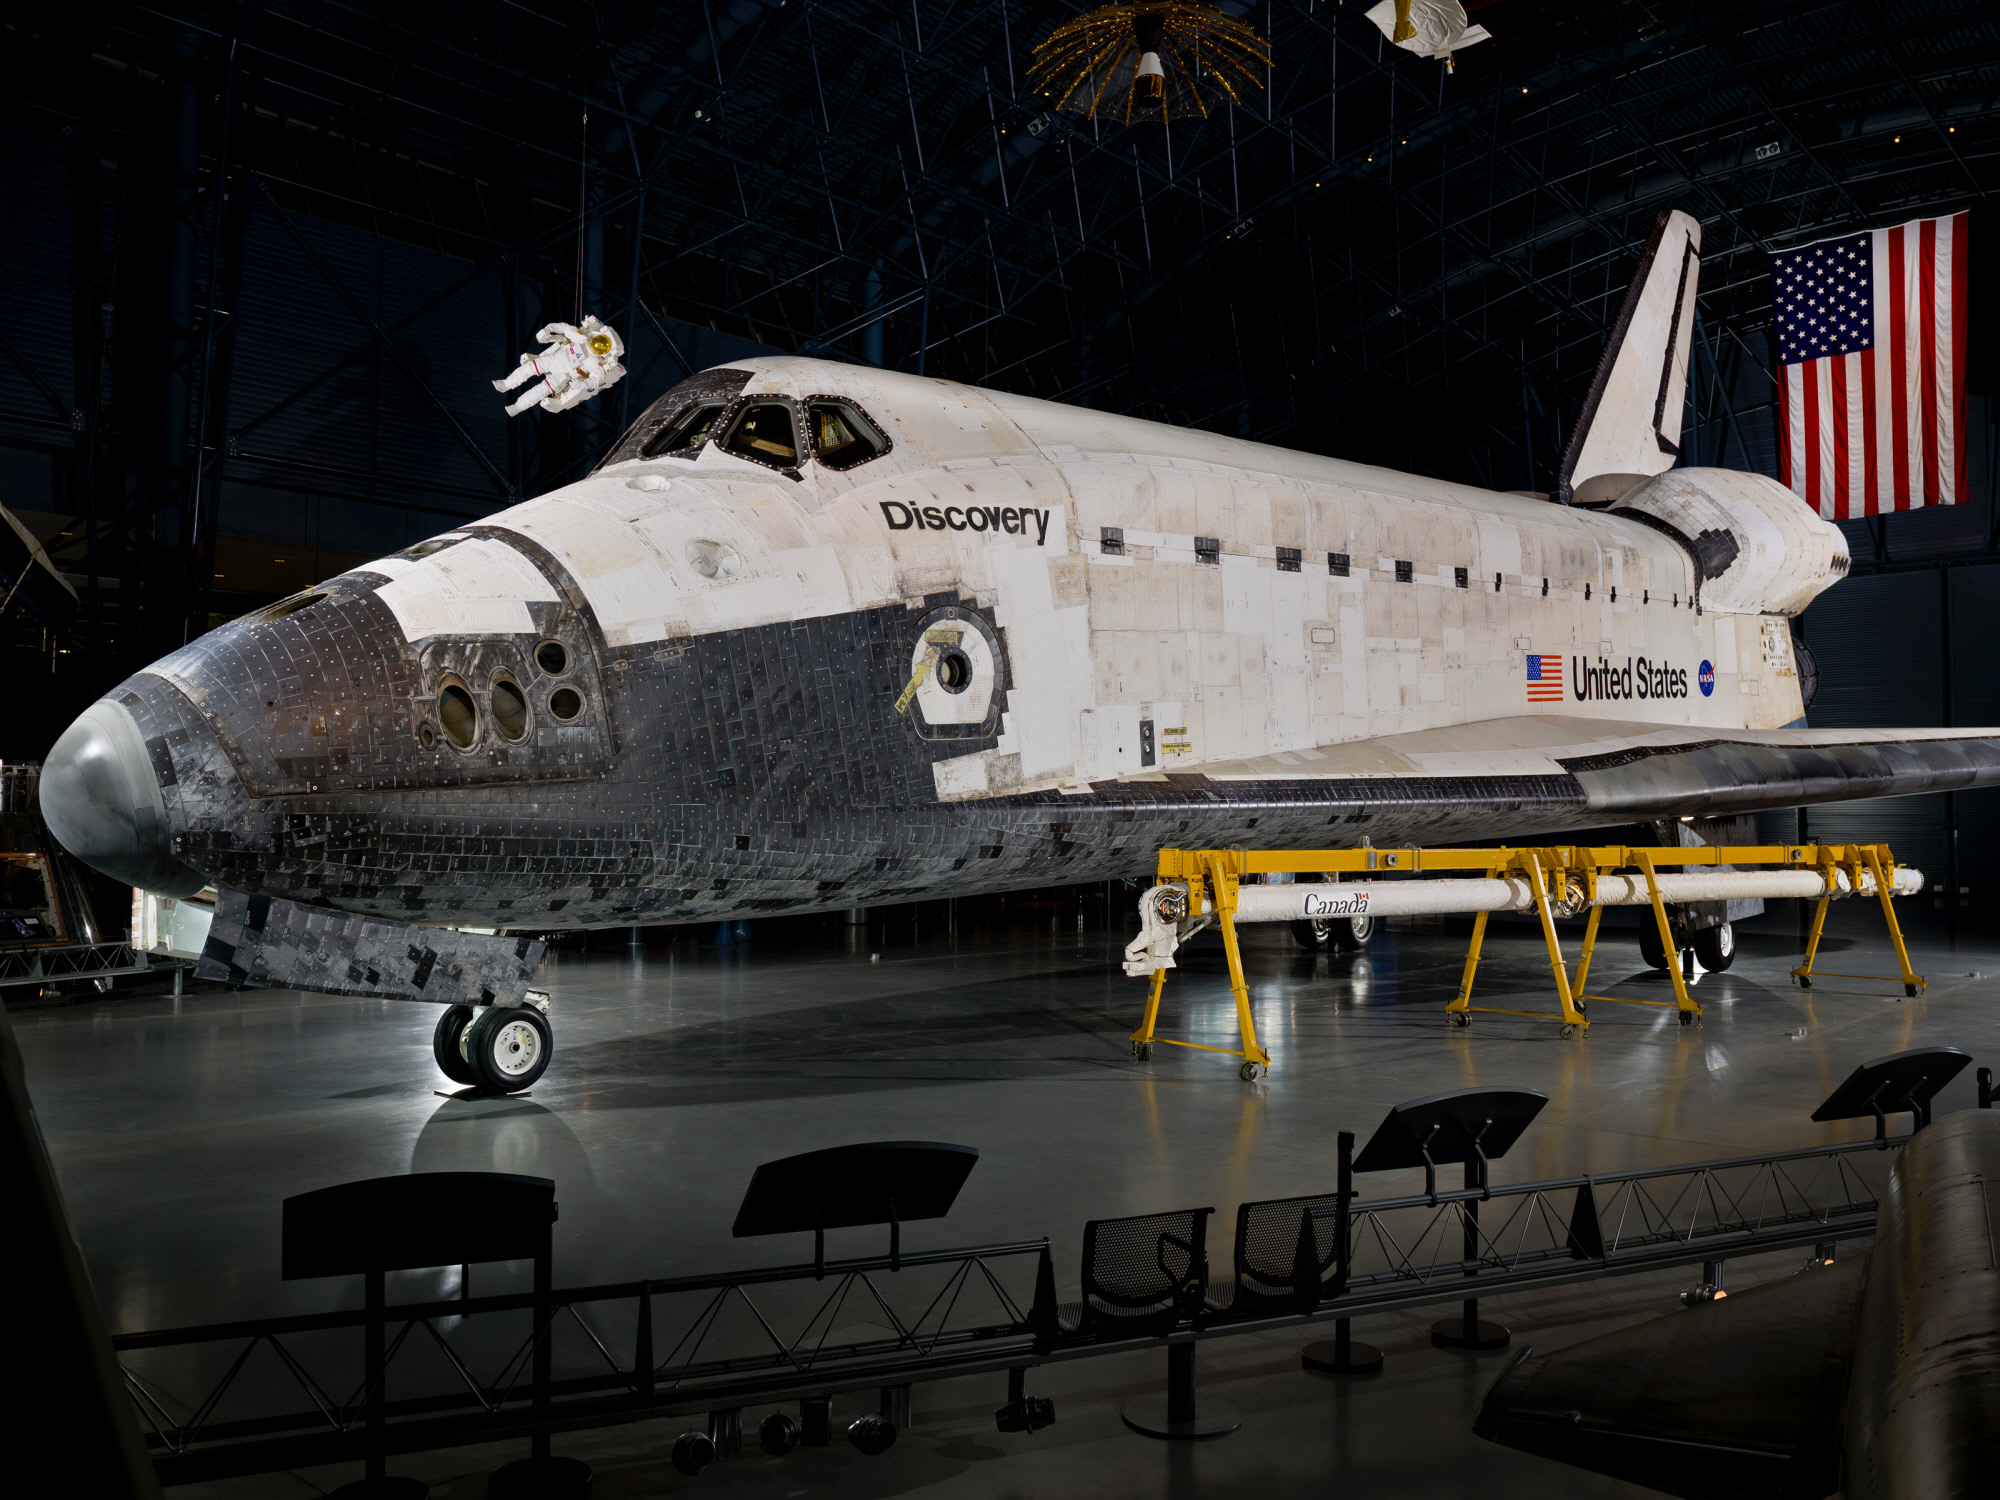 March 9. 2011 - Space Shuttle Discovery completed its final mission. : MURICA